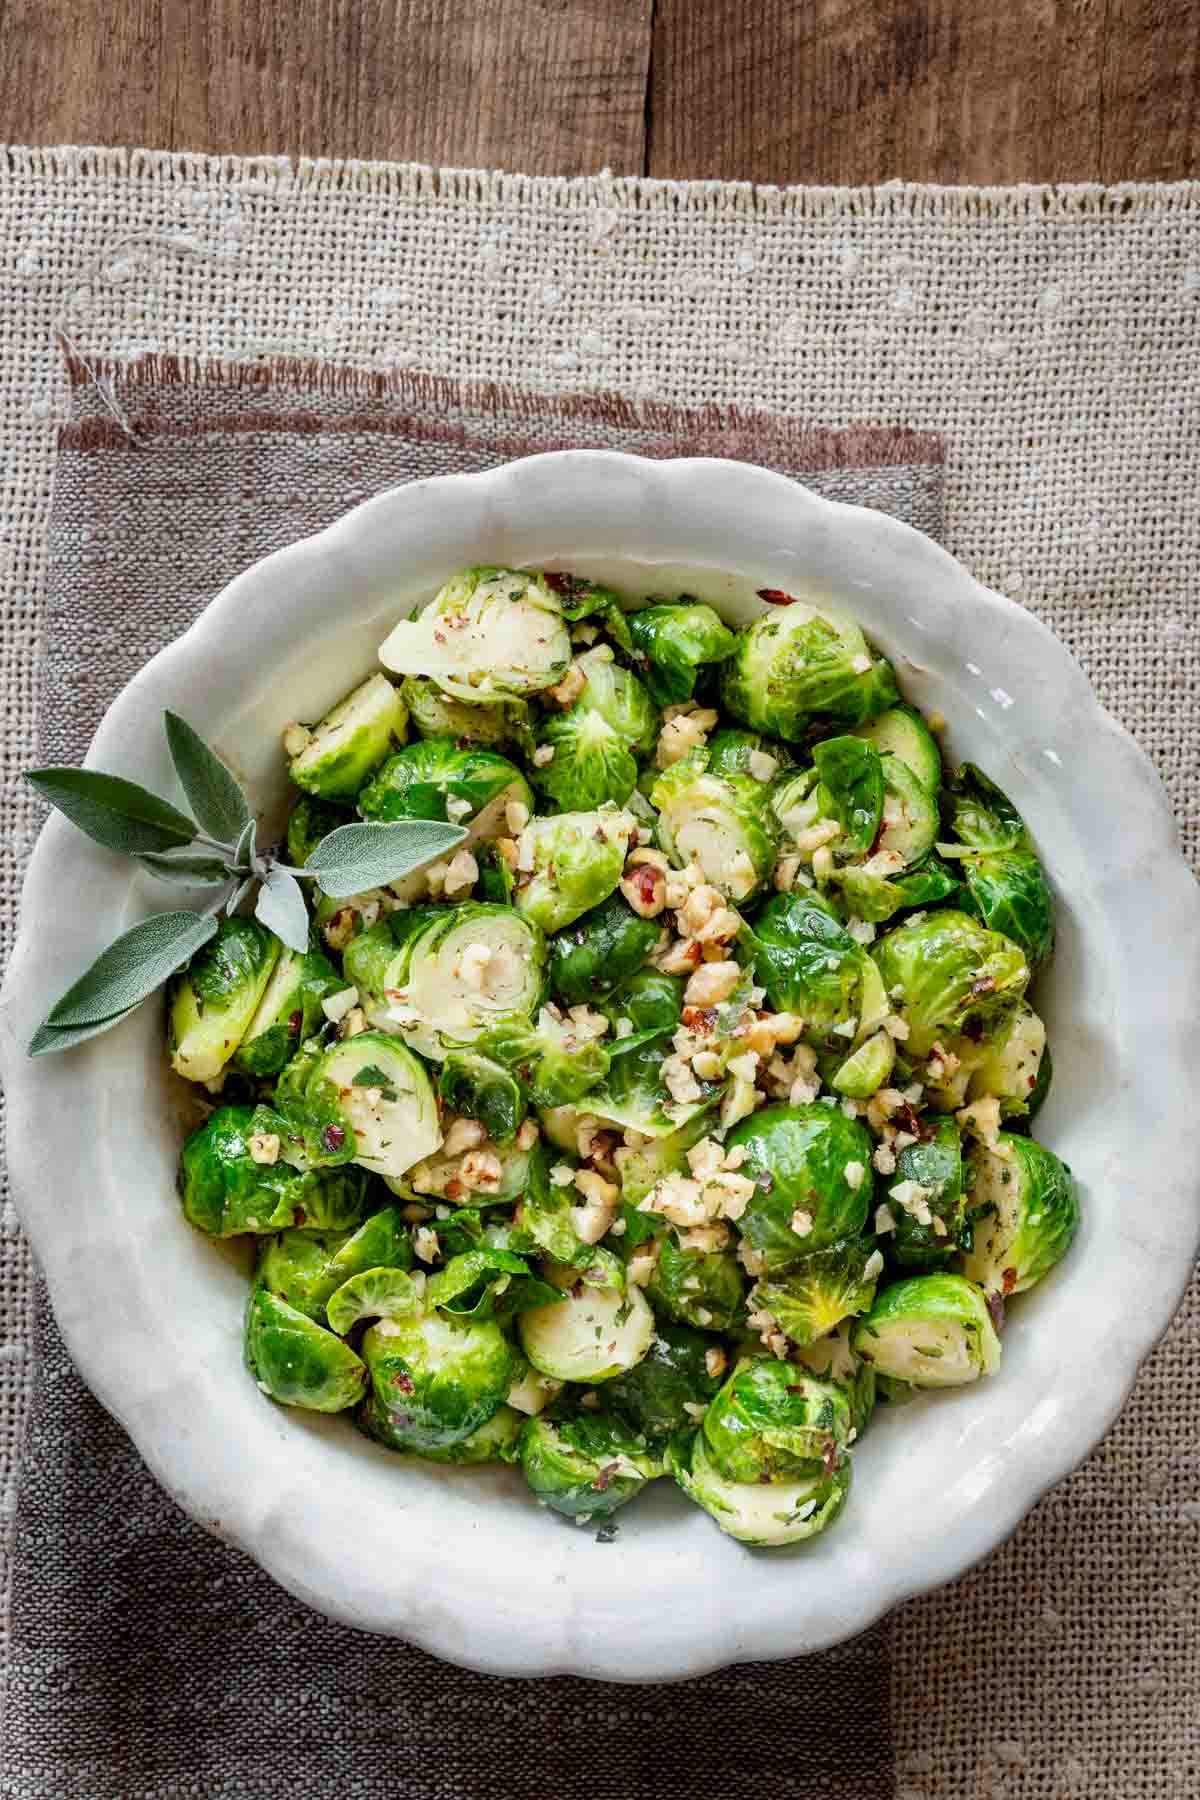 brussels sprouts with hazelnuts in a white bowl on a rustic tan linen